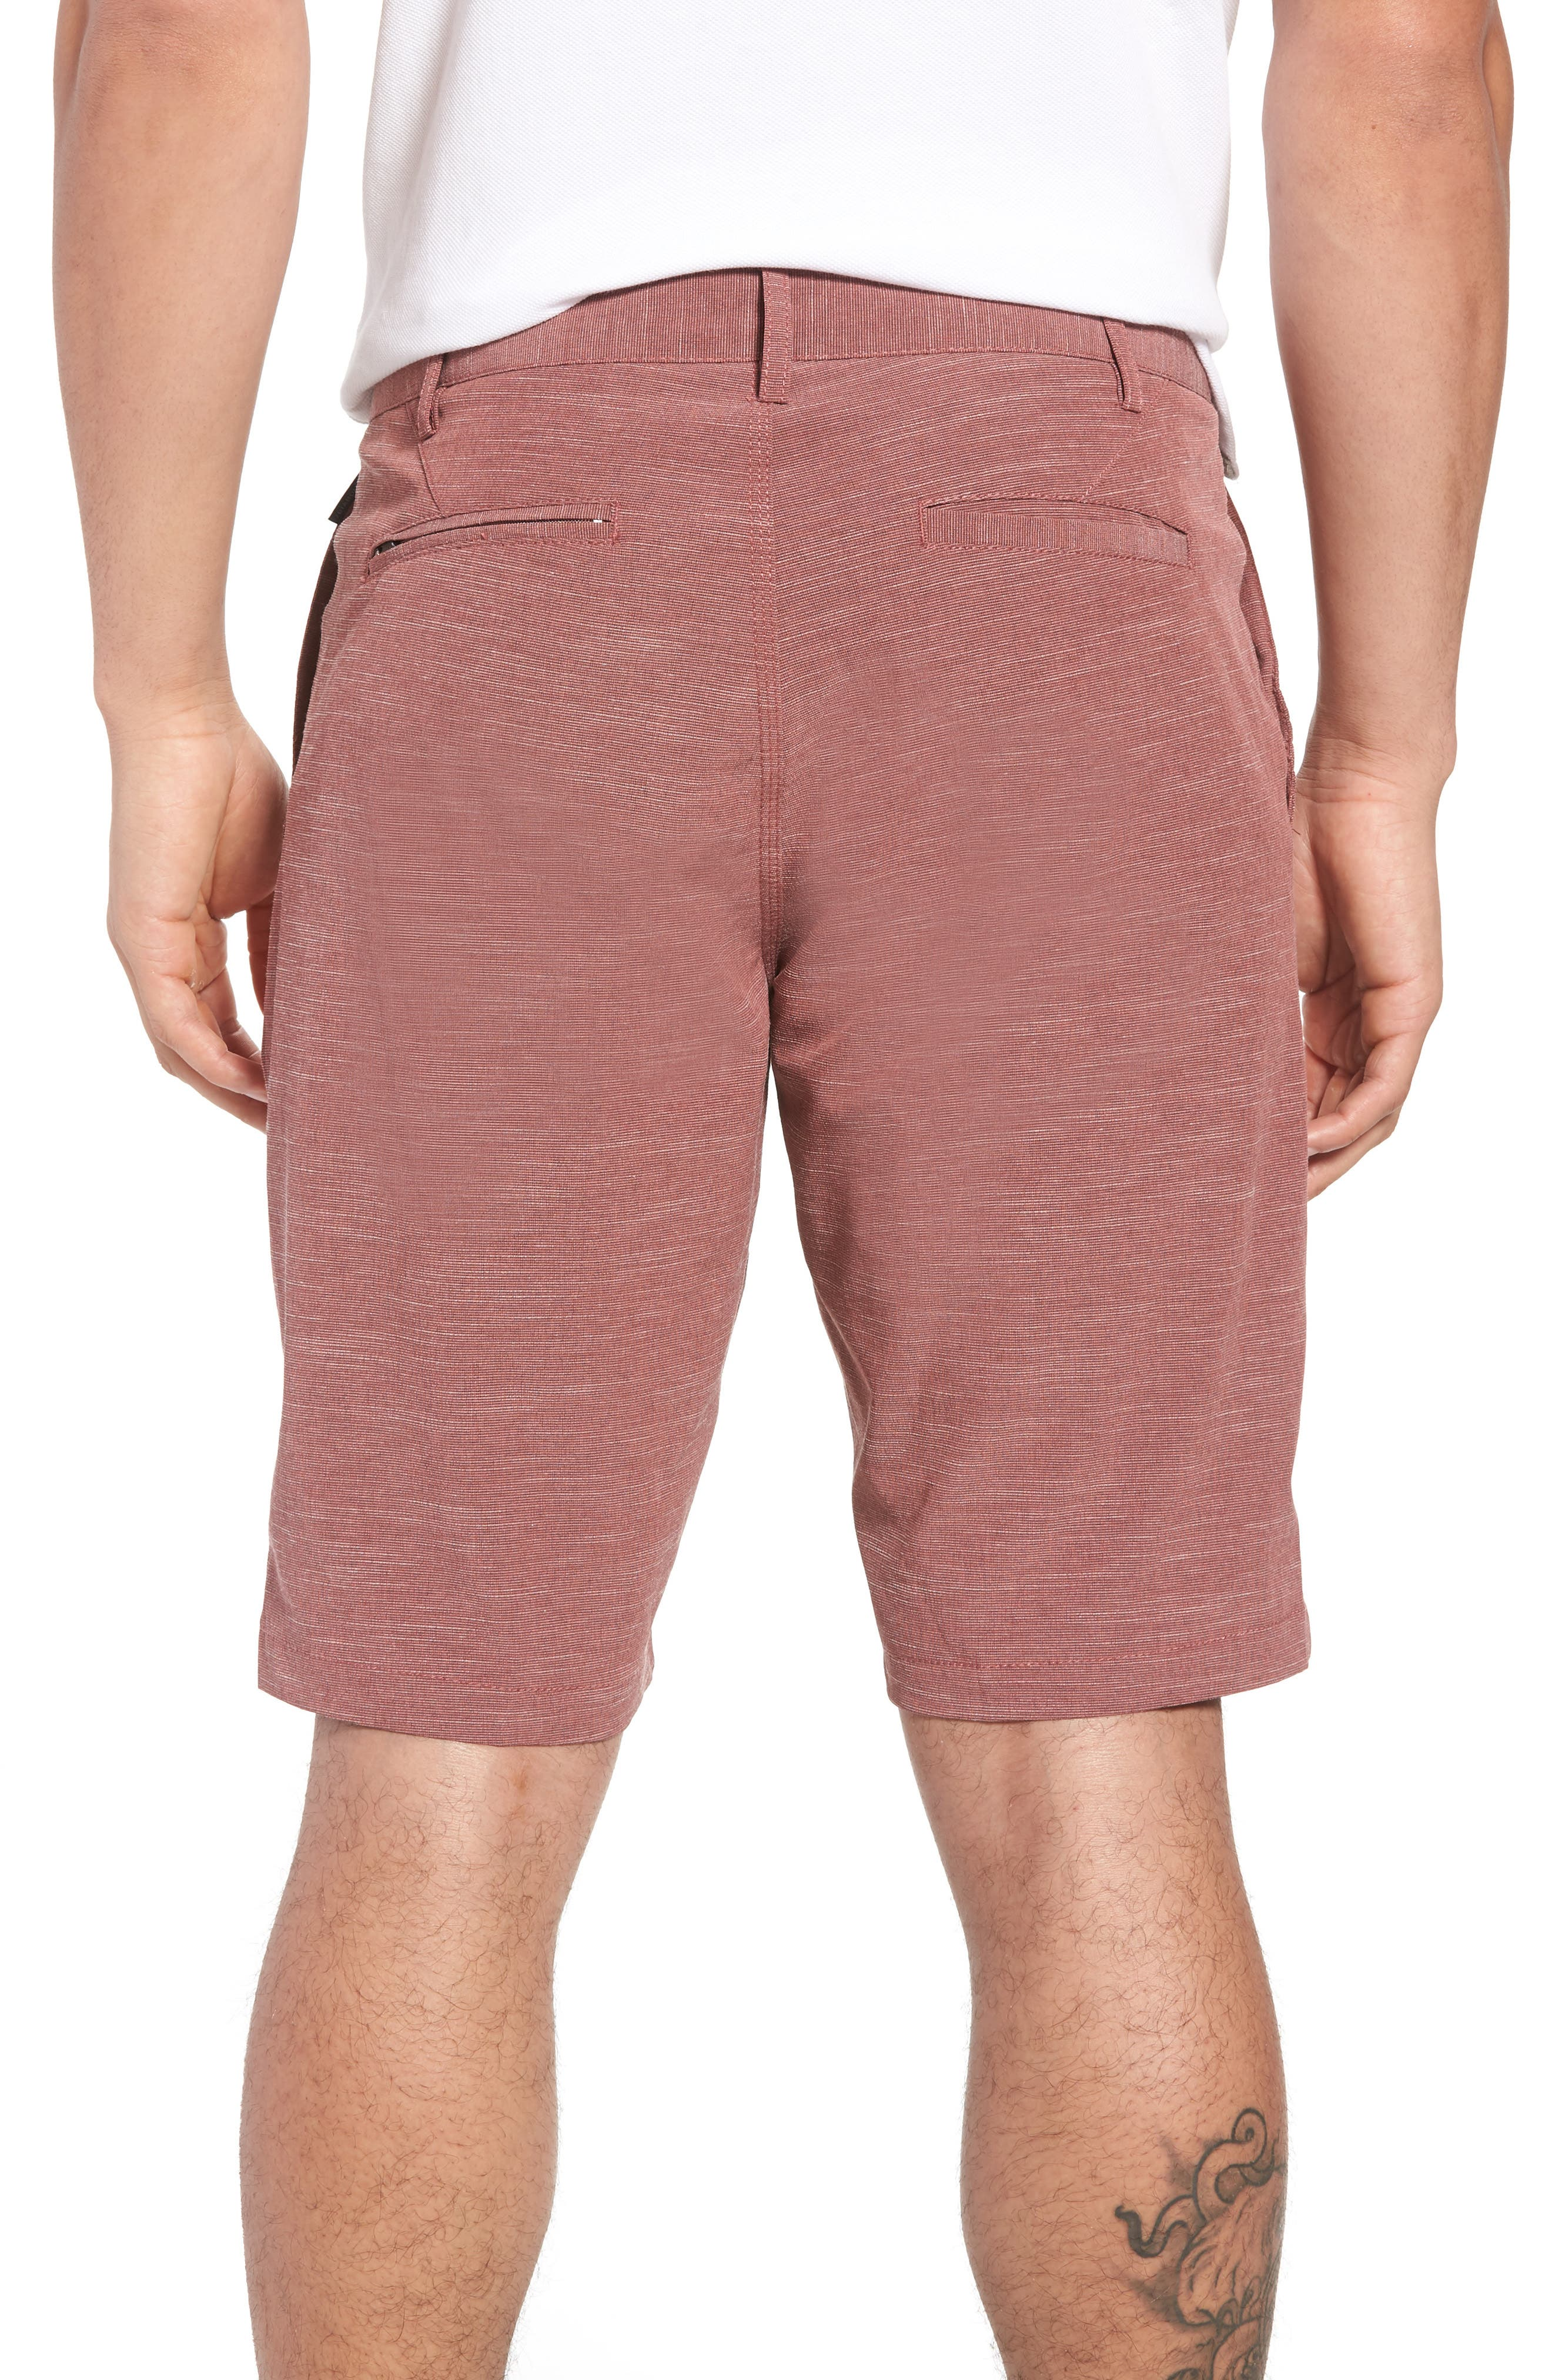 Existence Stretch Shorts,                             Alternate thumbnail 8, color,